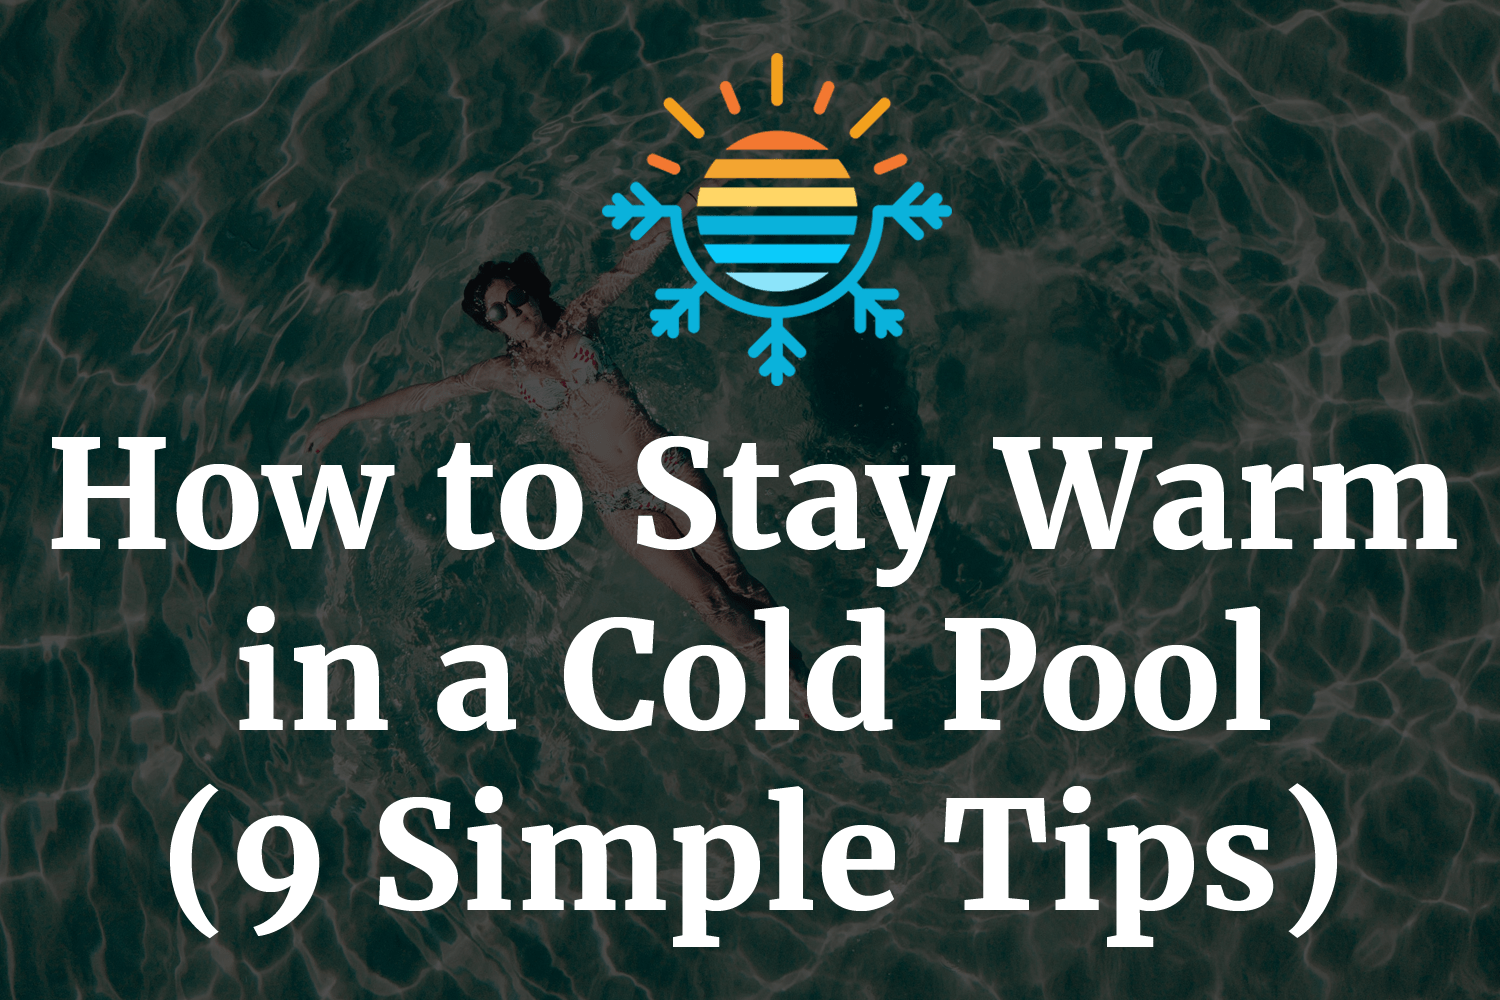 How to Stay Warm in a Cold Pool (9 Simple Tips)